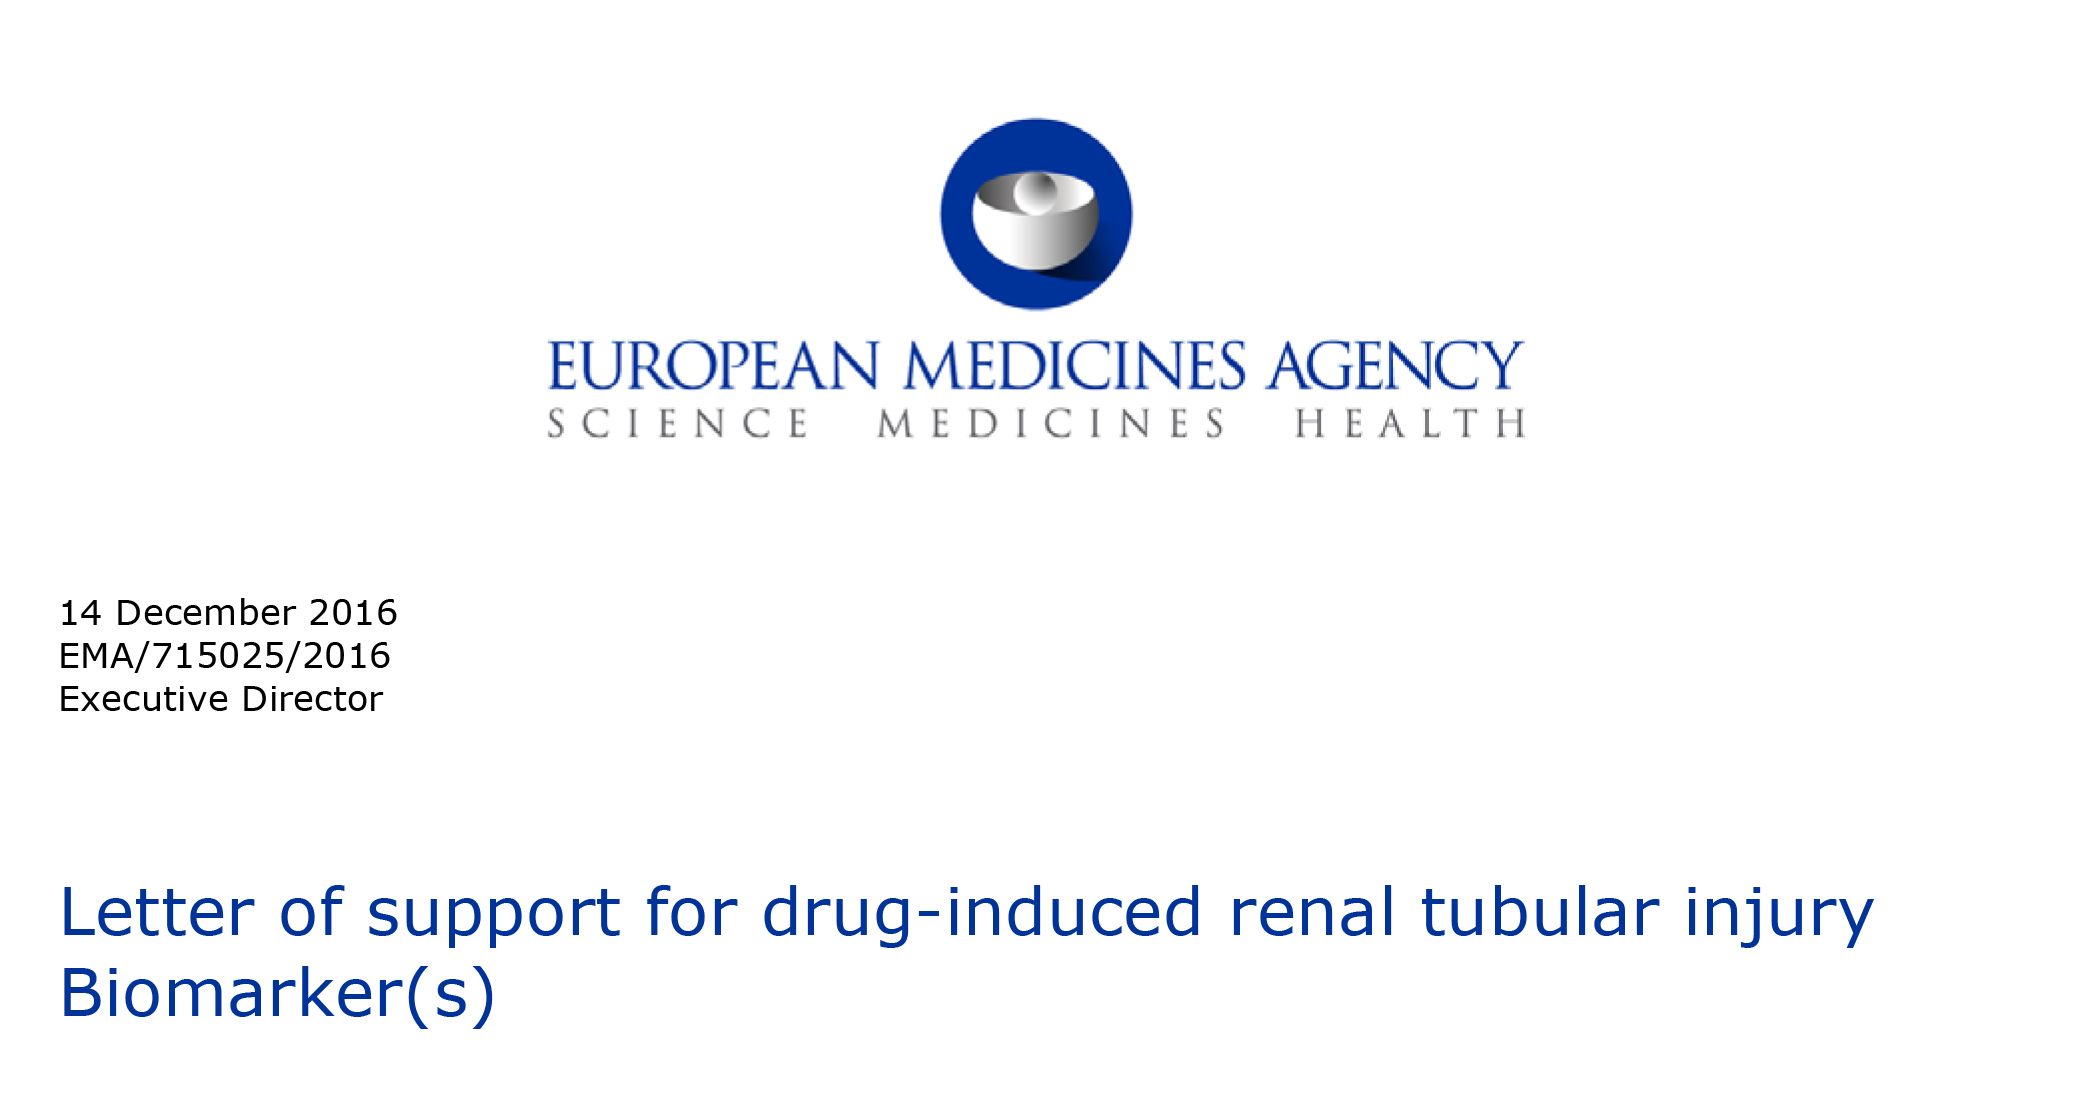 EDMA Supports Renal Injury Biomarkers